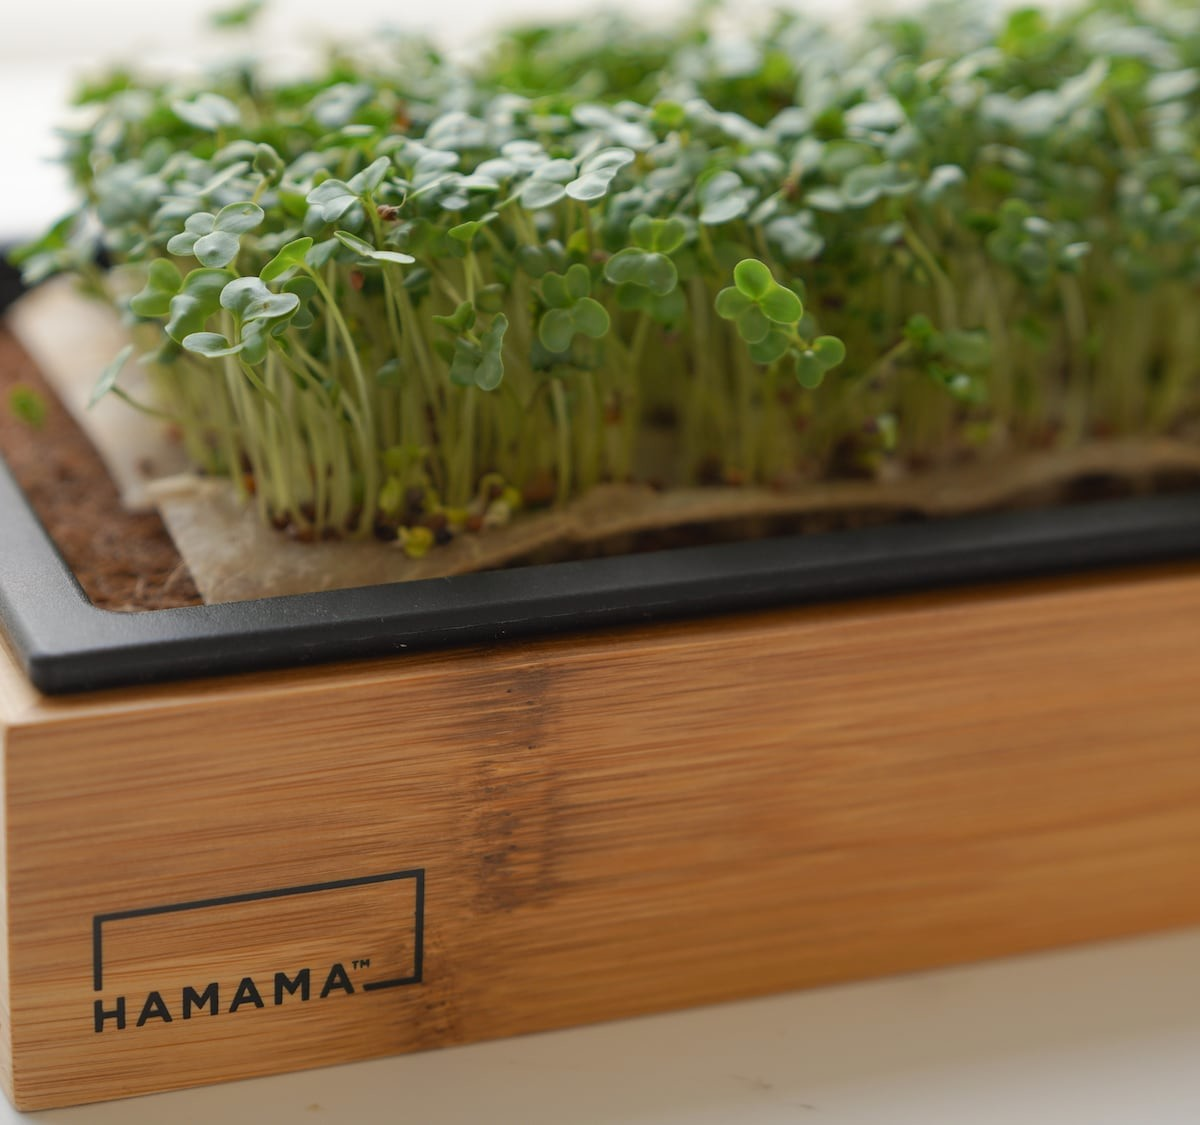 Hamama Microgreens Kit is your fail-proof indoor victory garden